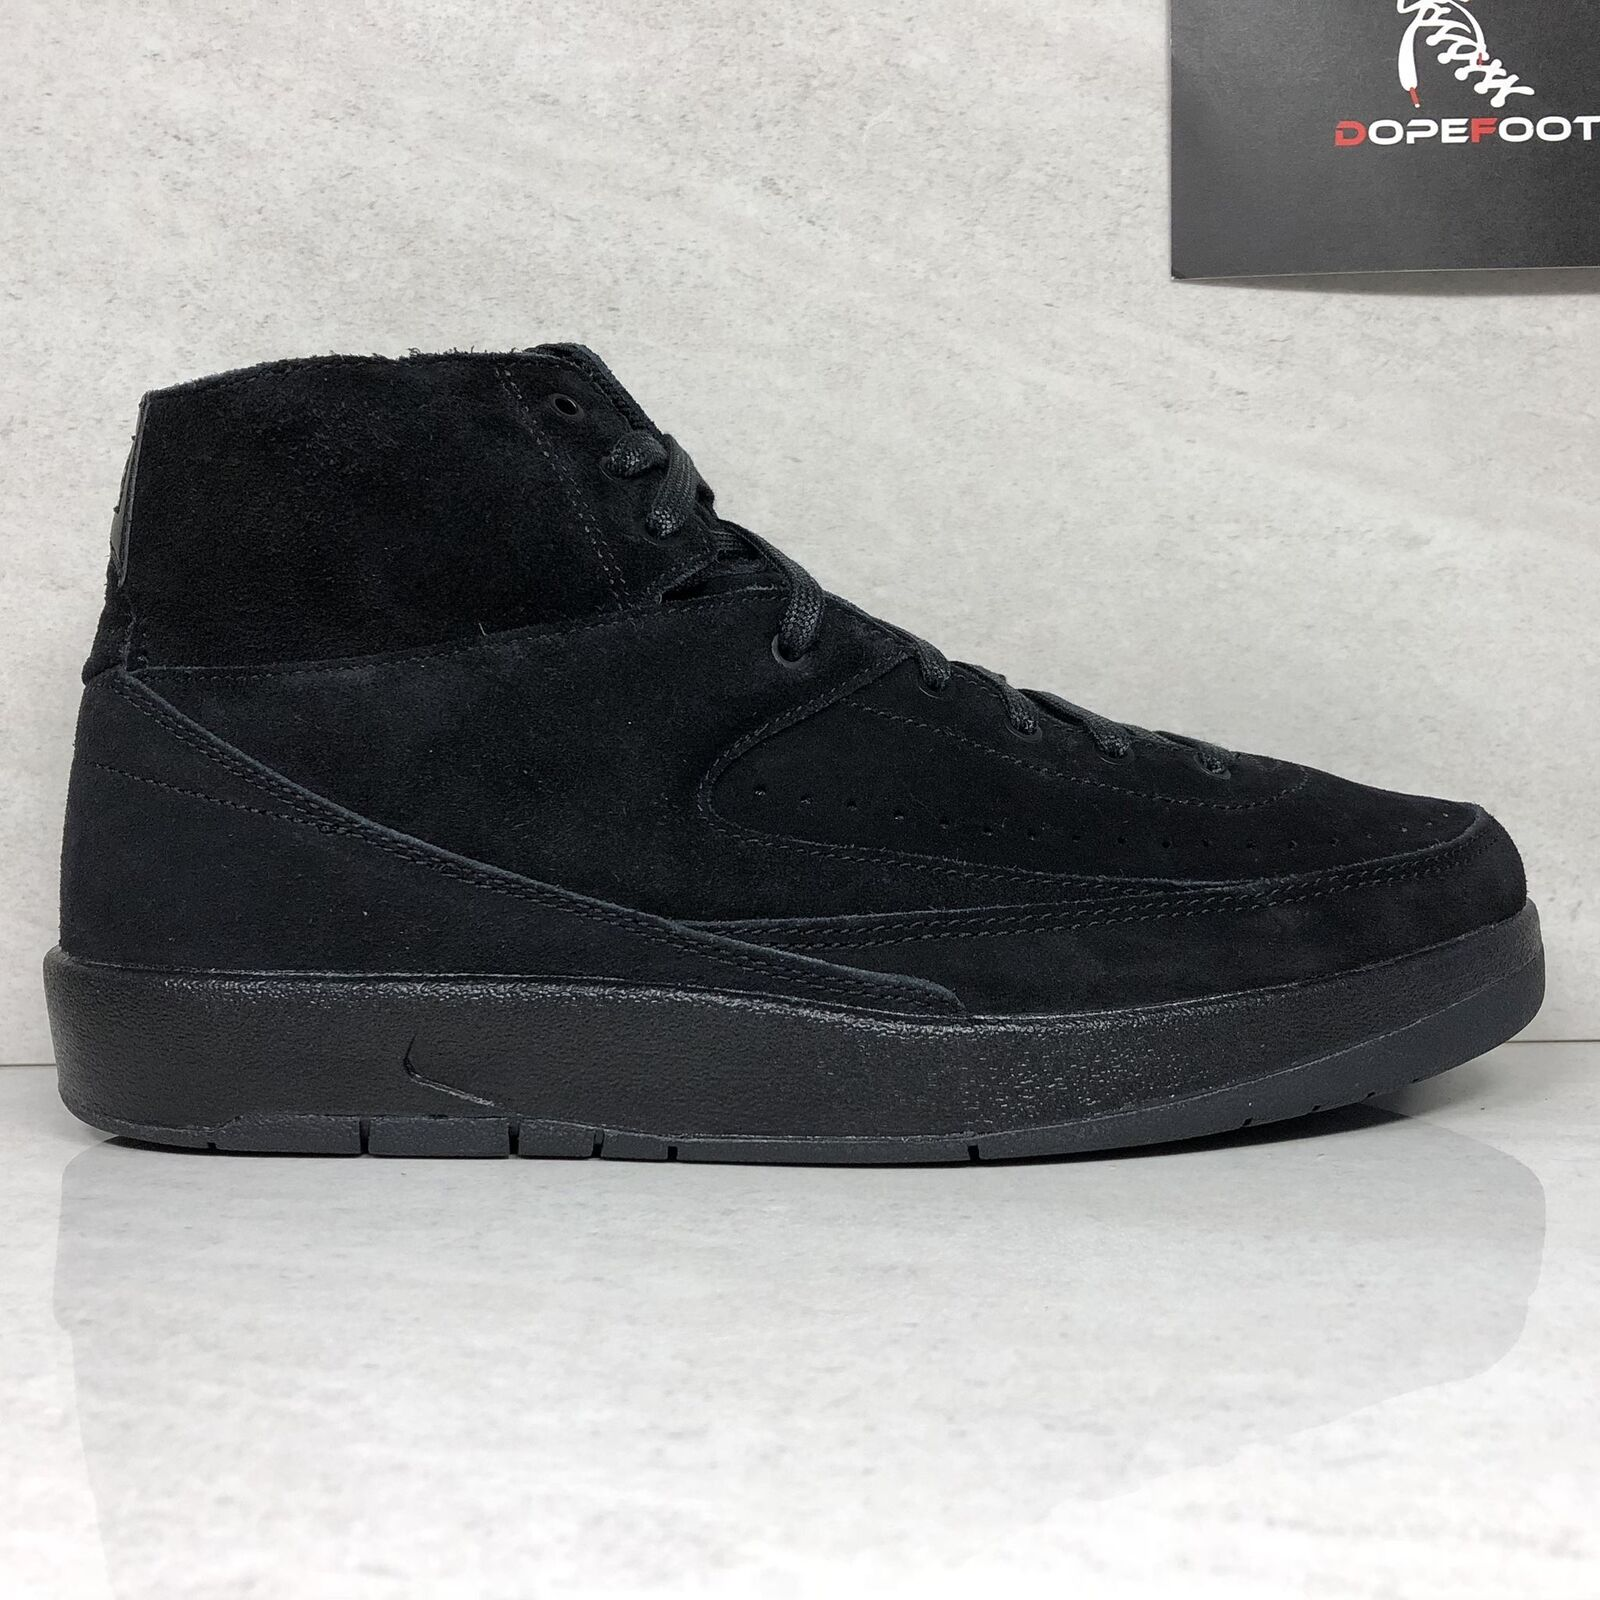 DS Nike Air Jordan 2 Decon Size 9/Size 10 Black 897521 010